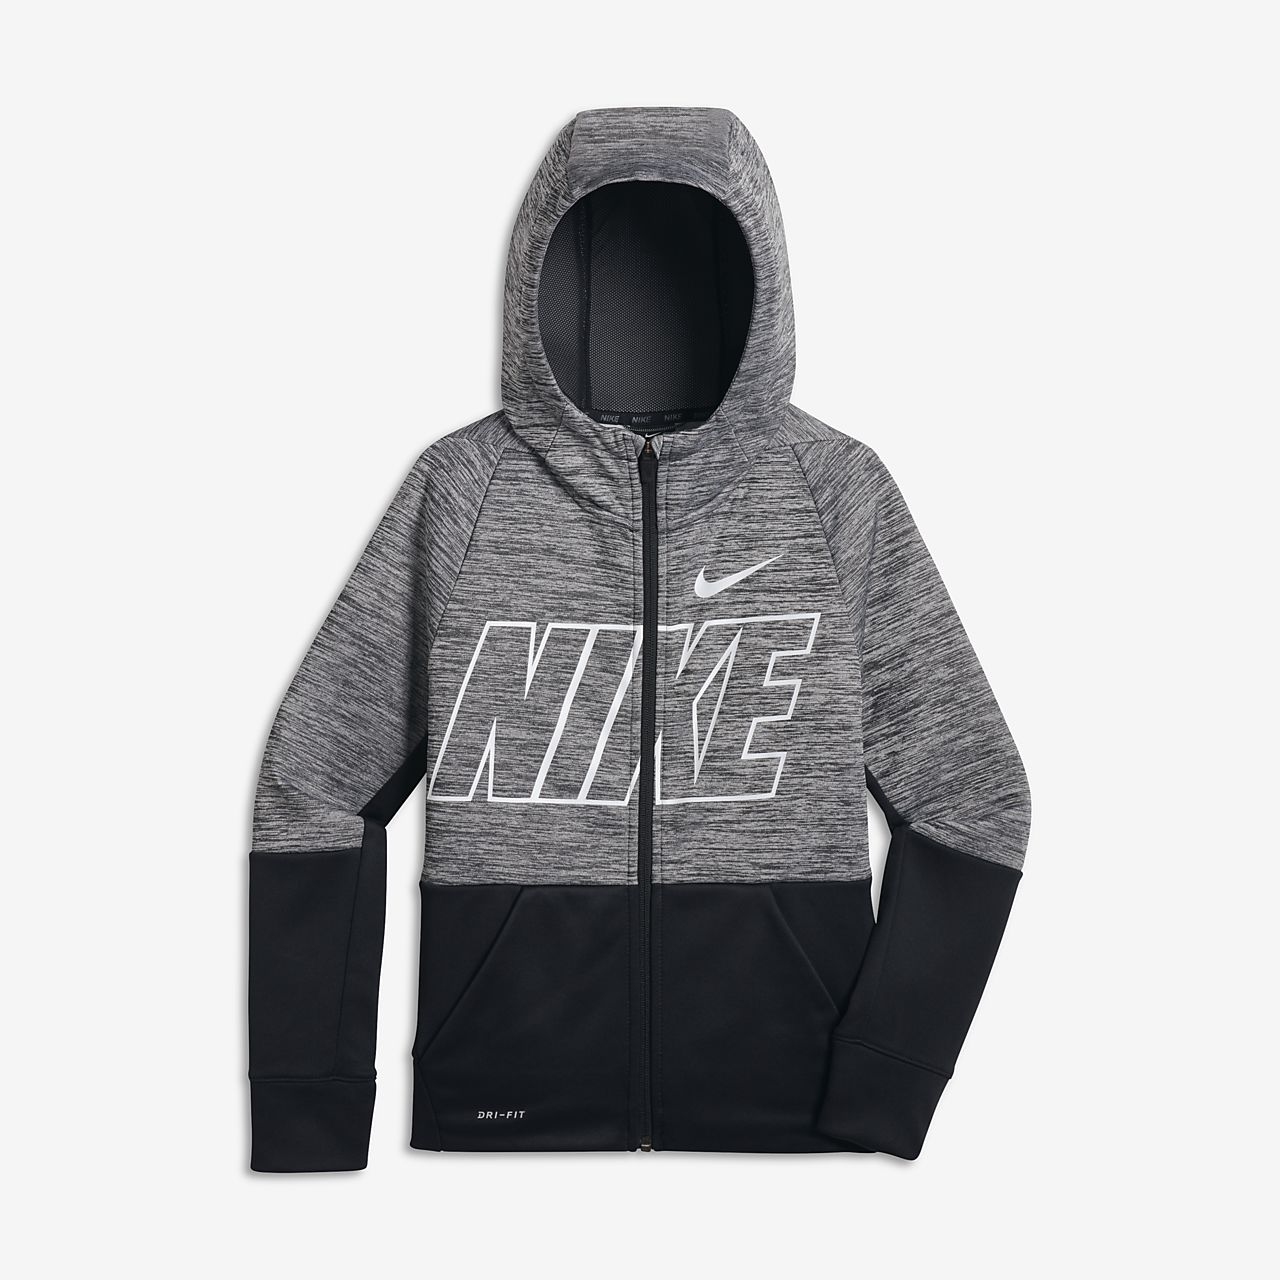 Fit Nike Entièrement À Sweat Capuche Dri Therma Zippé Training De q8IYTwa